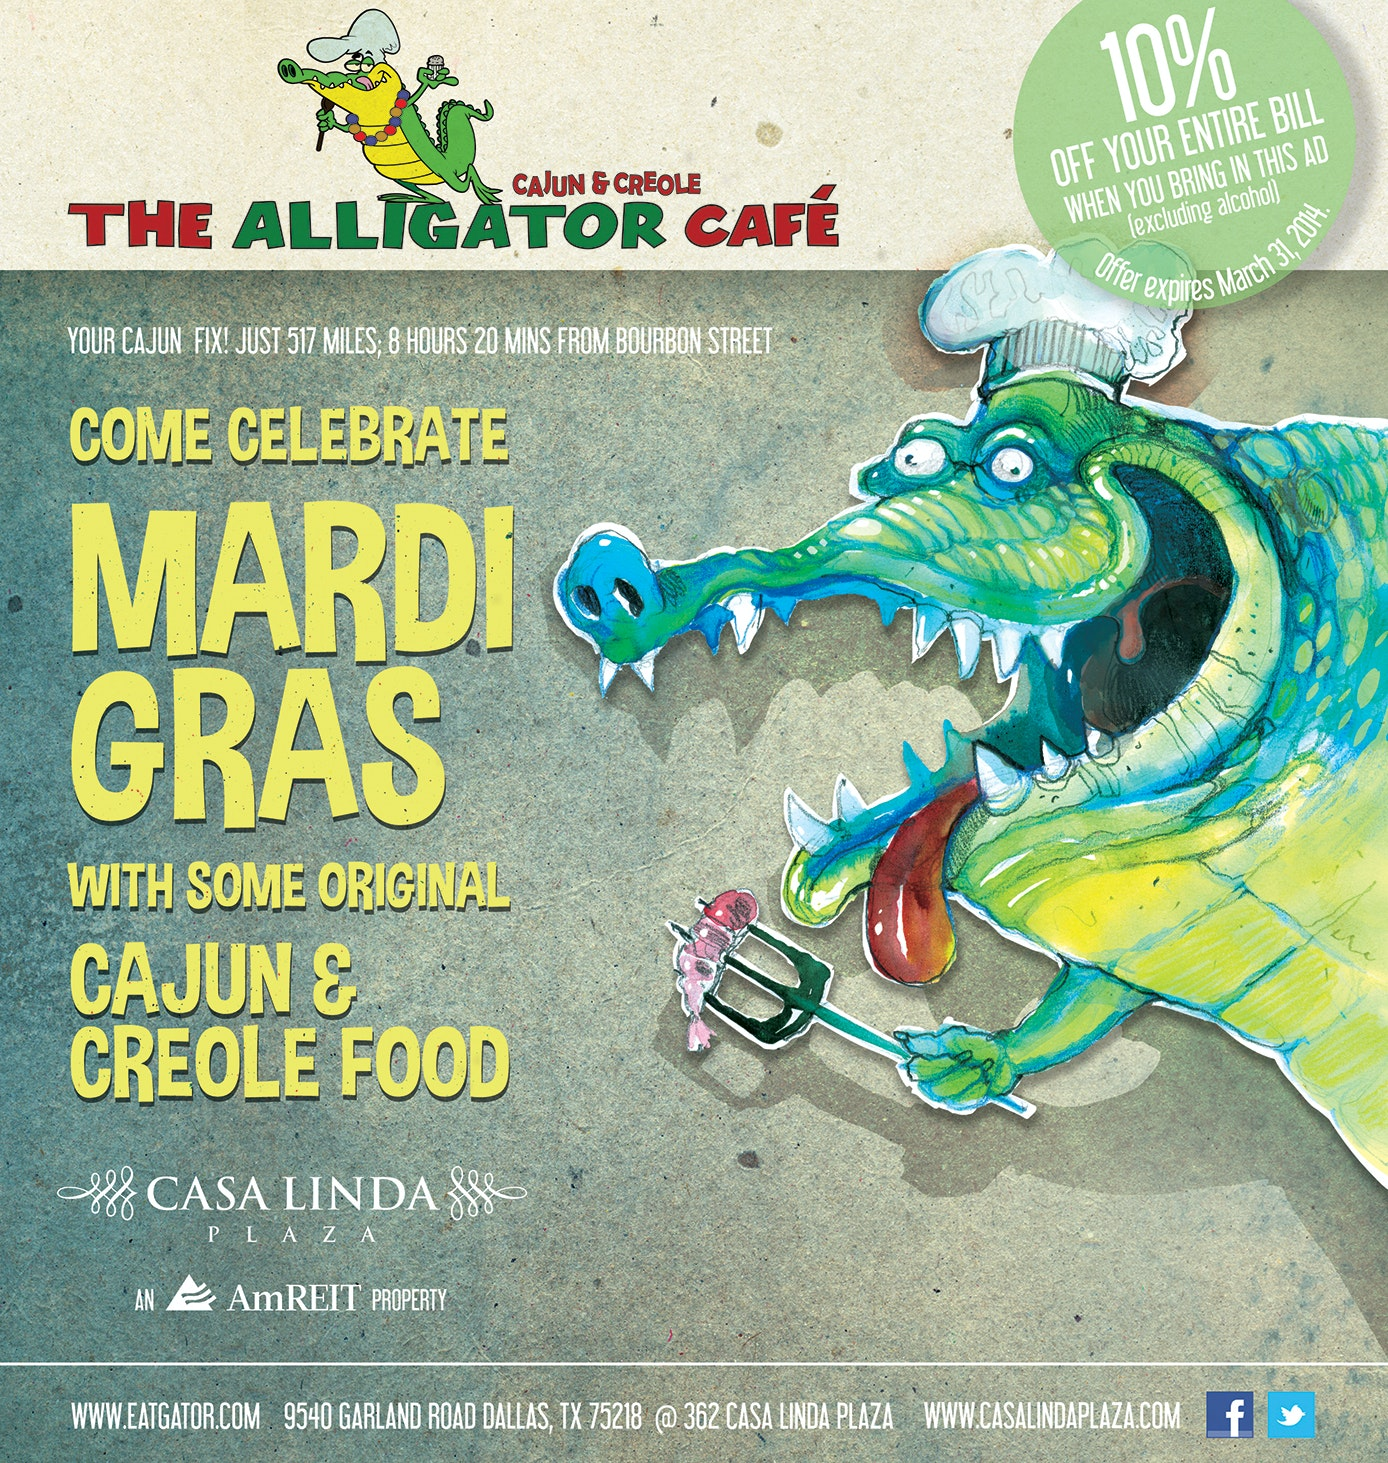 Mardi Gras flyer for a café